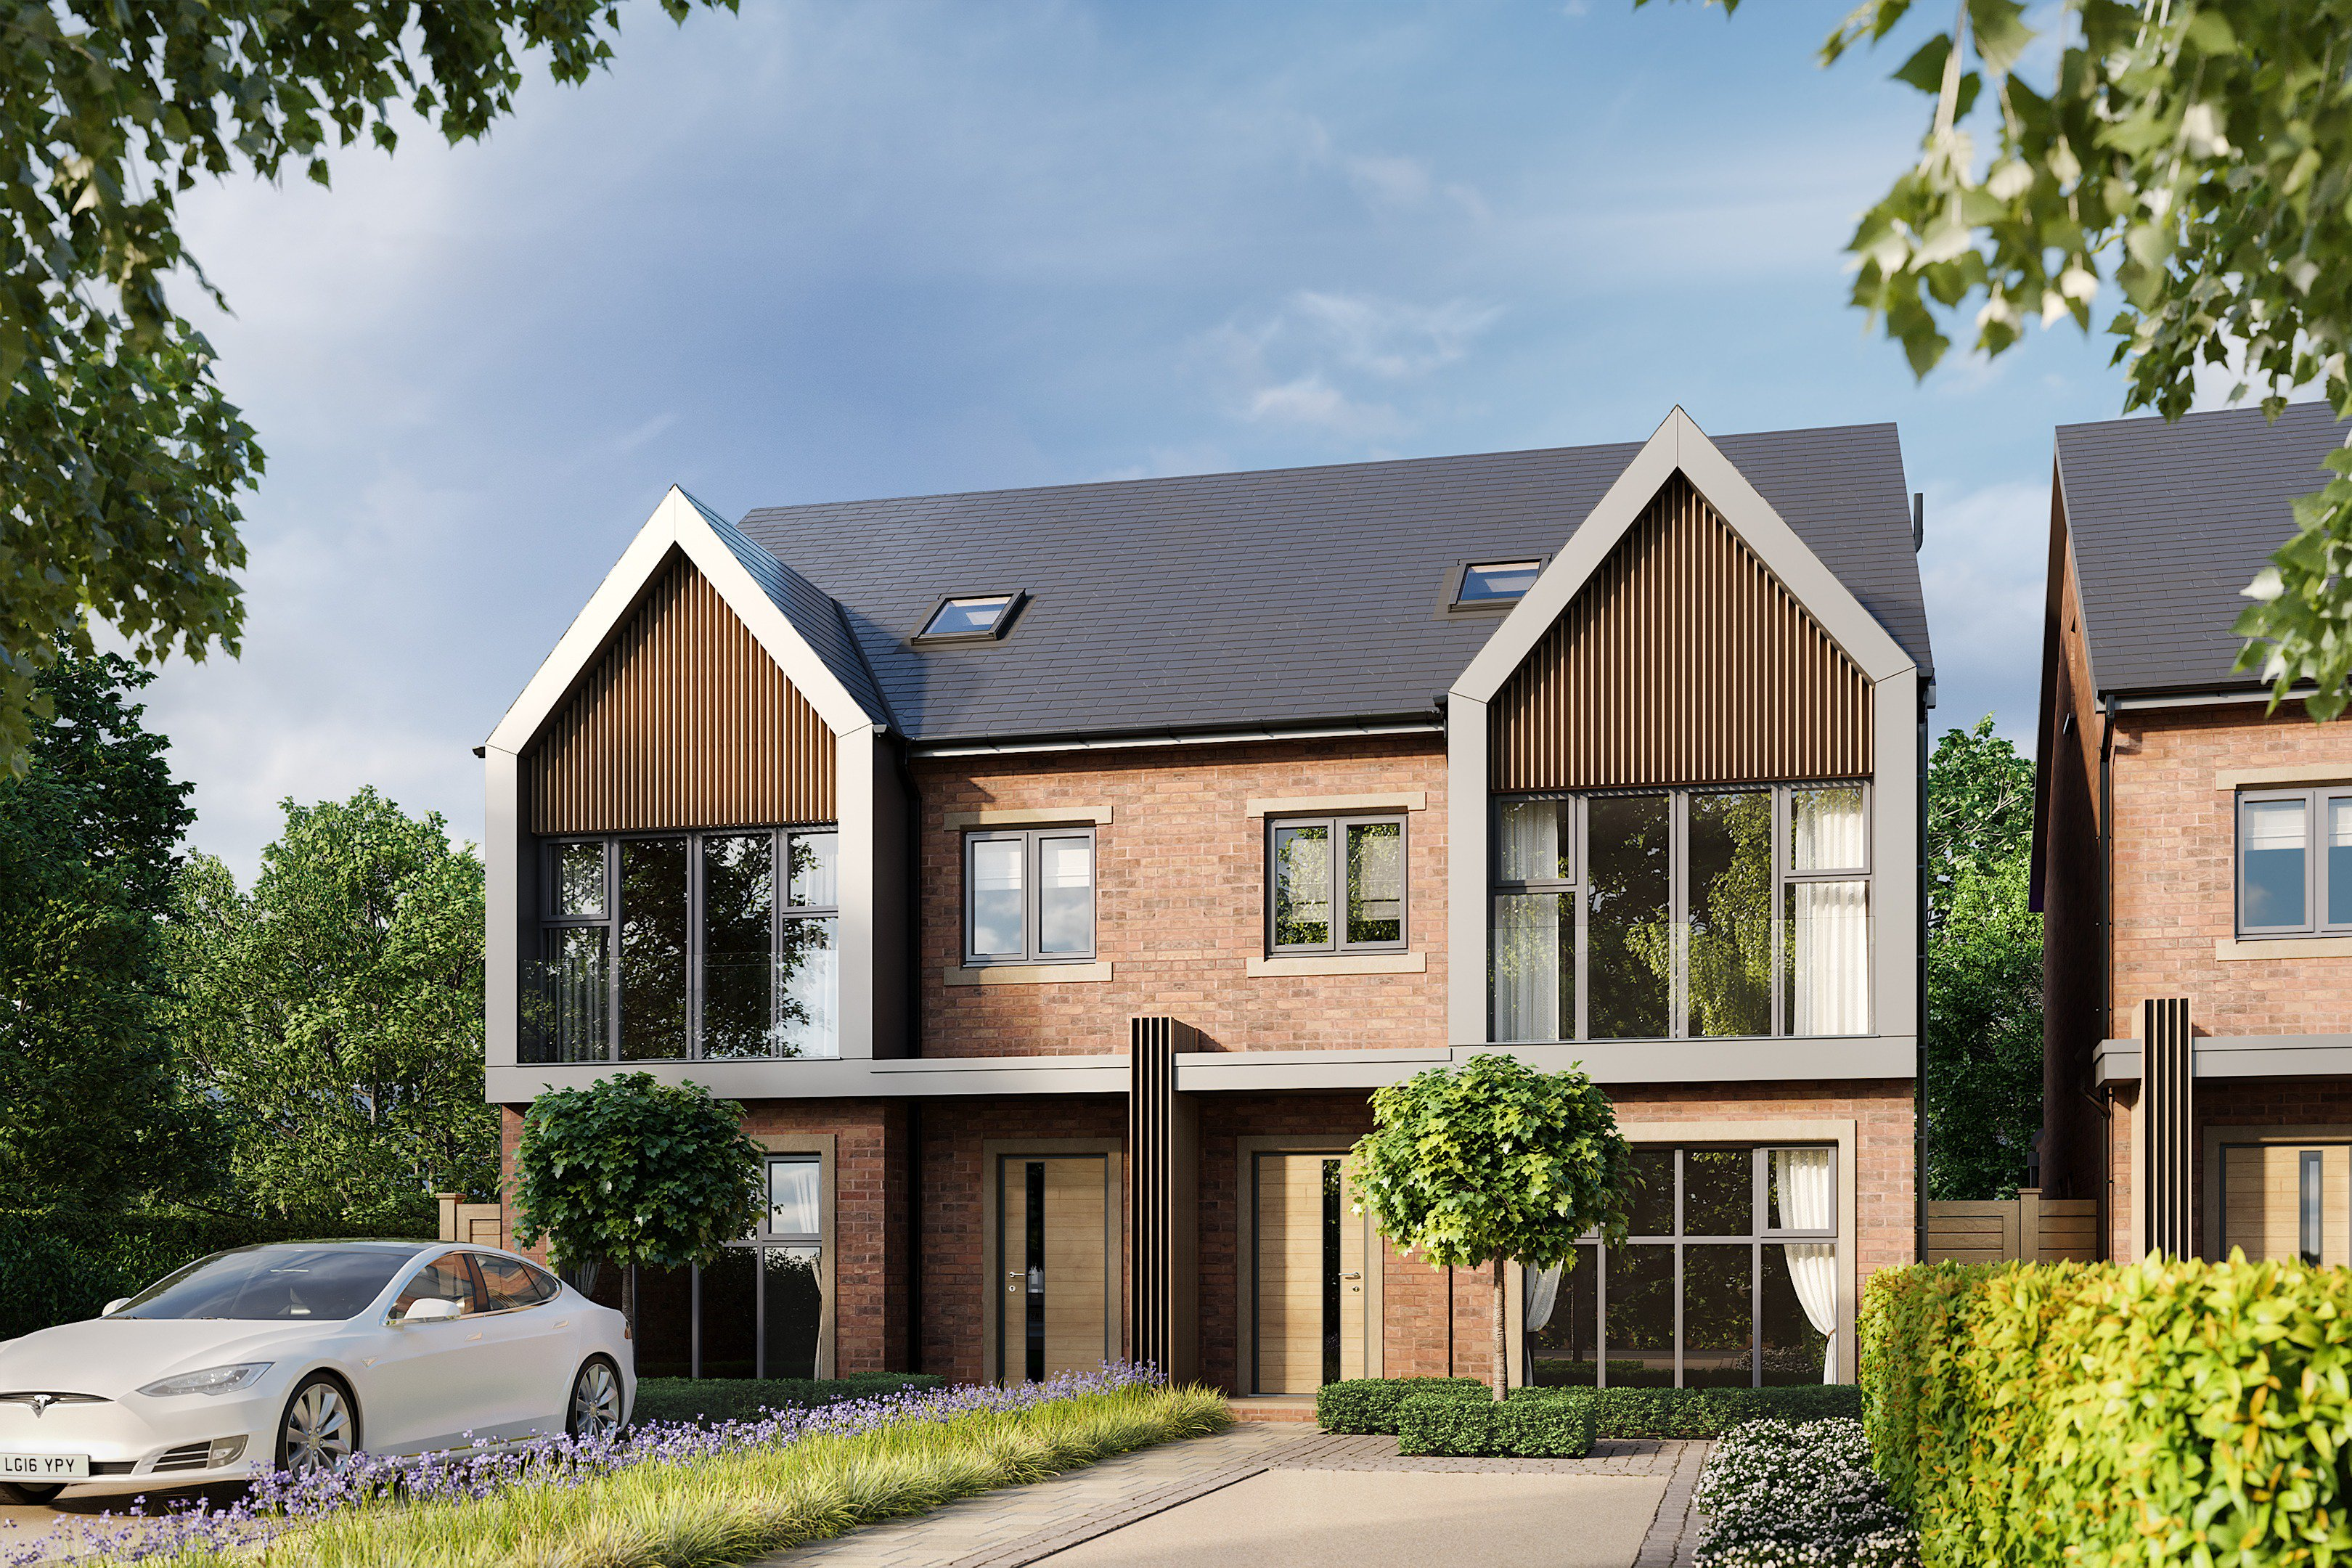 Brook Gardens Timperley, a pair of semi-detached houses